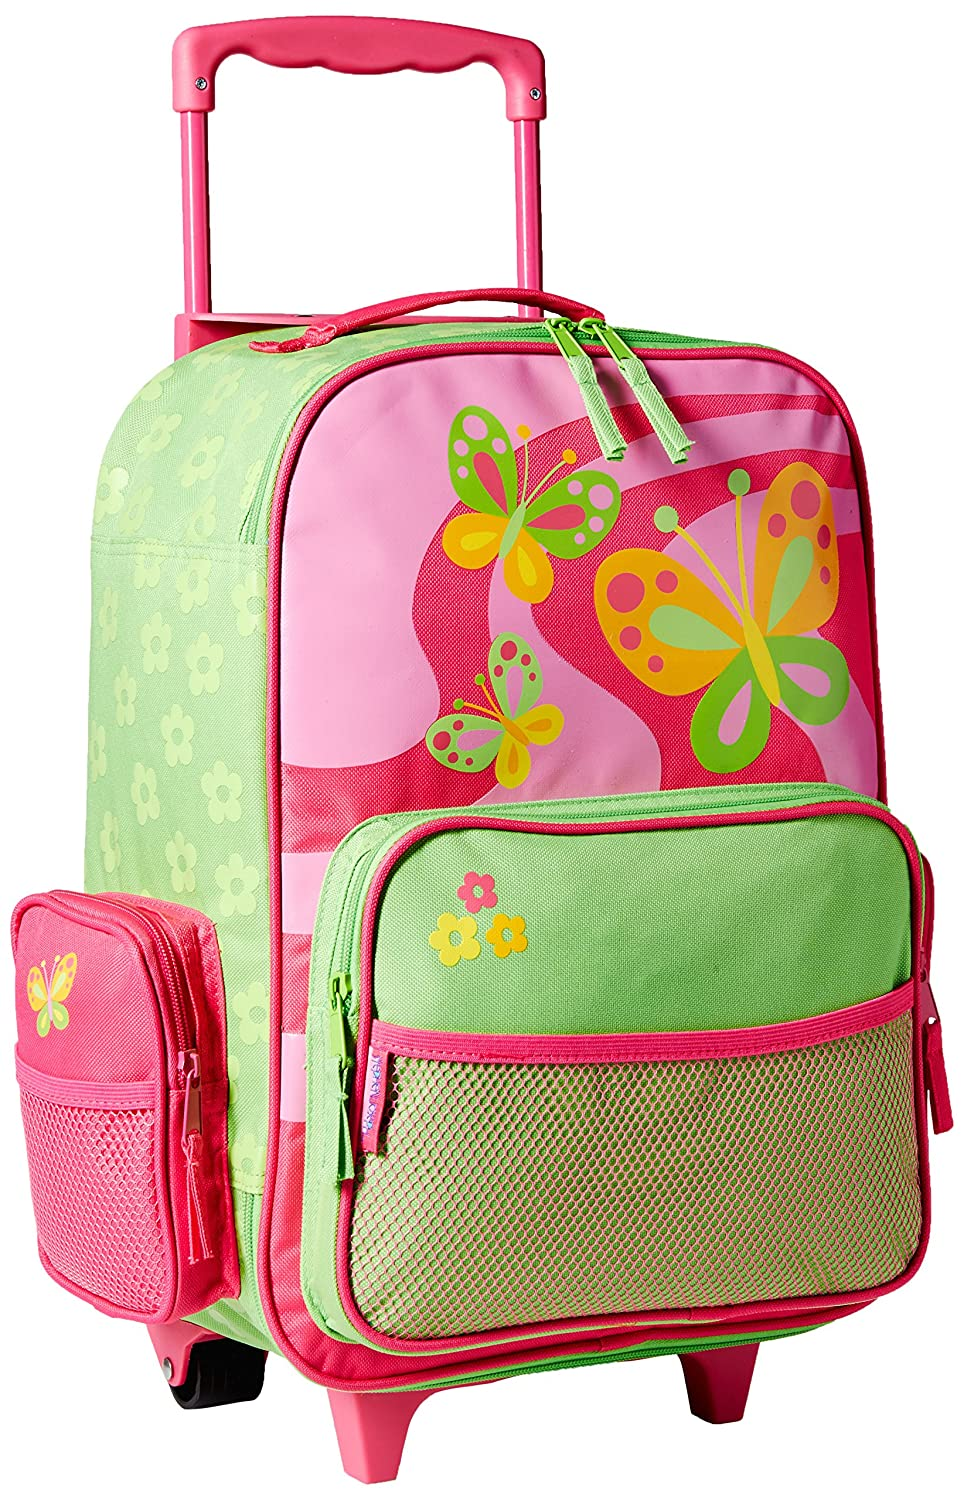 Amazon.com: Stephen Joseph Classic Rolling Luggage, Butterfly ...